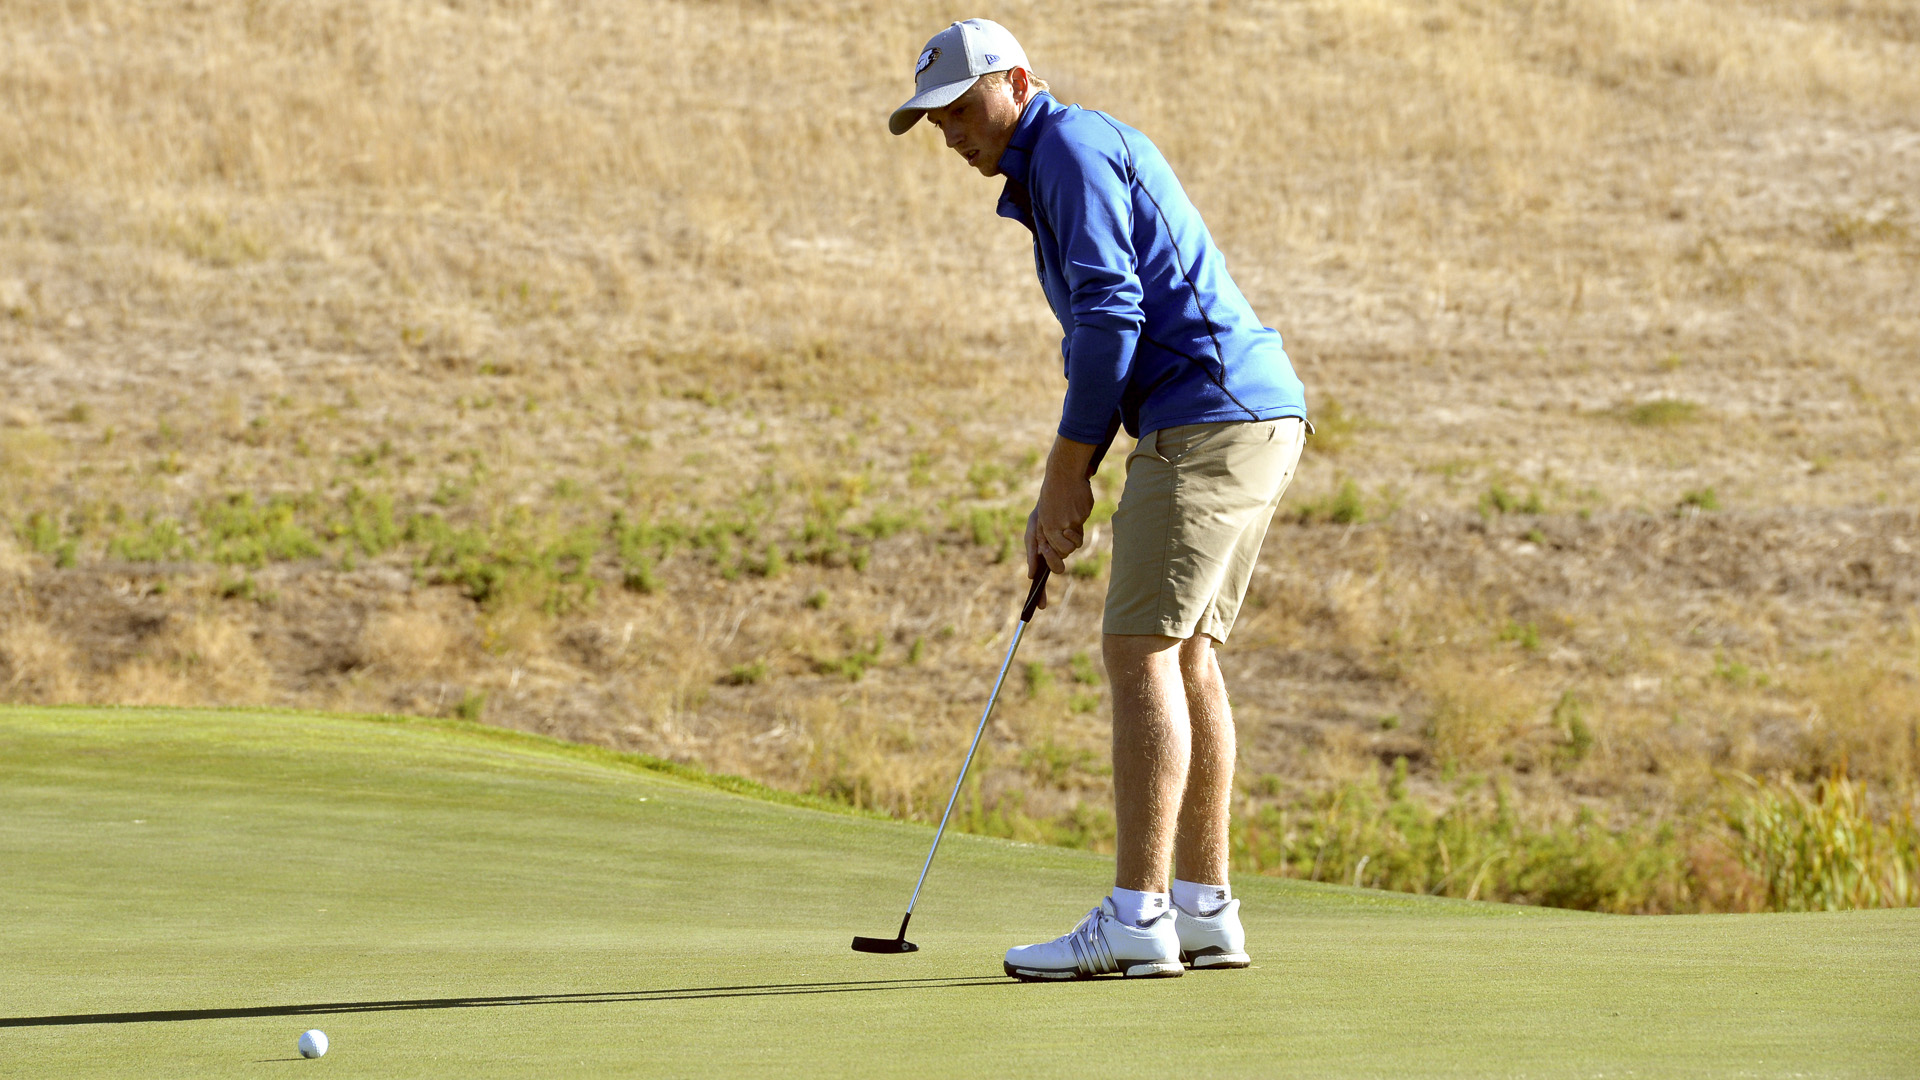 Harrison has been a highlight for the men's golf team this season.